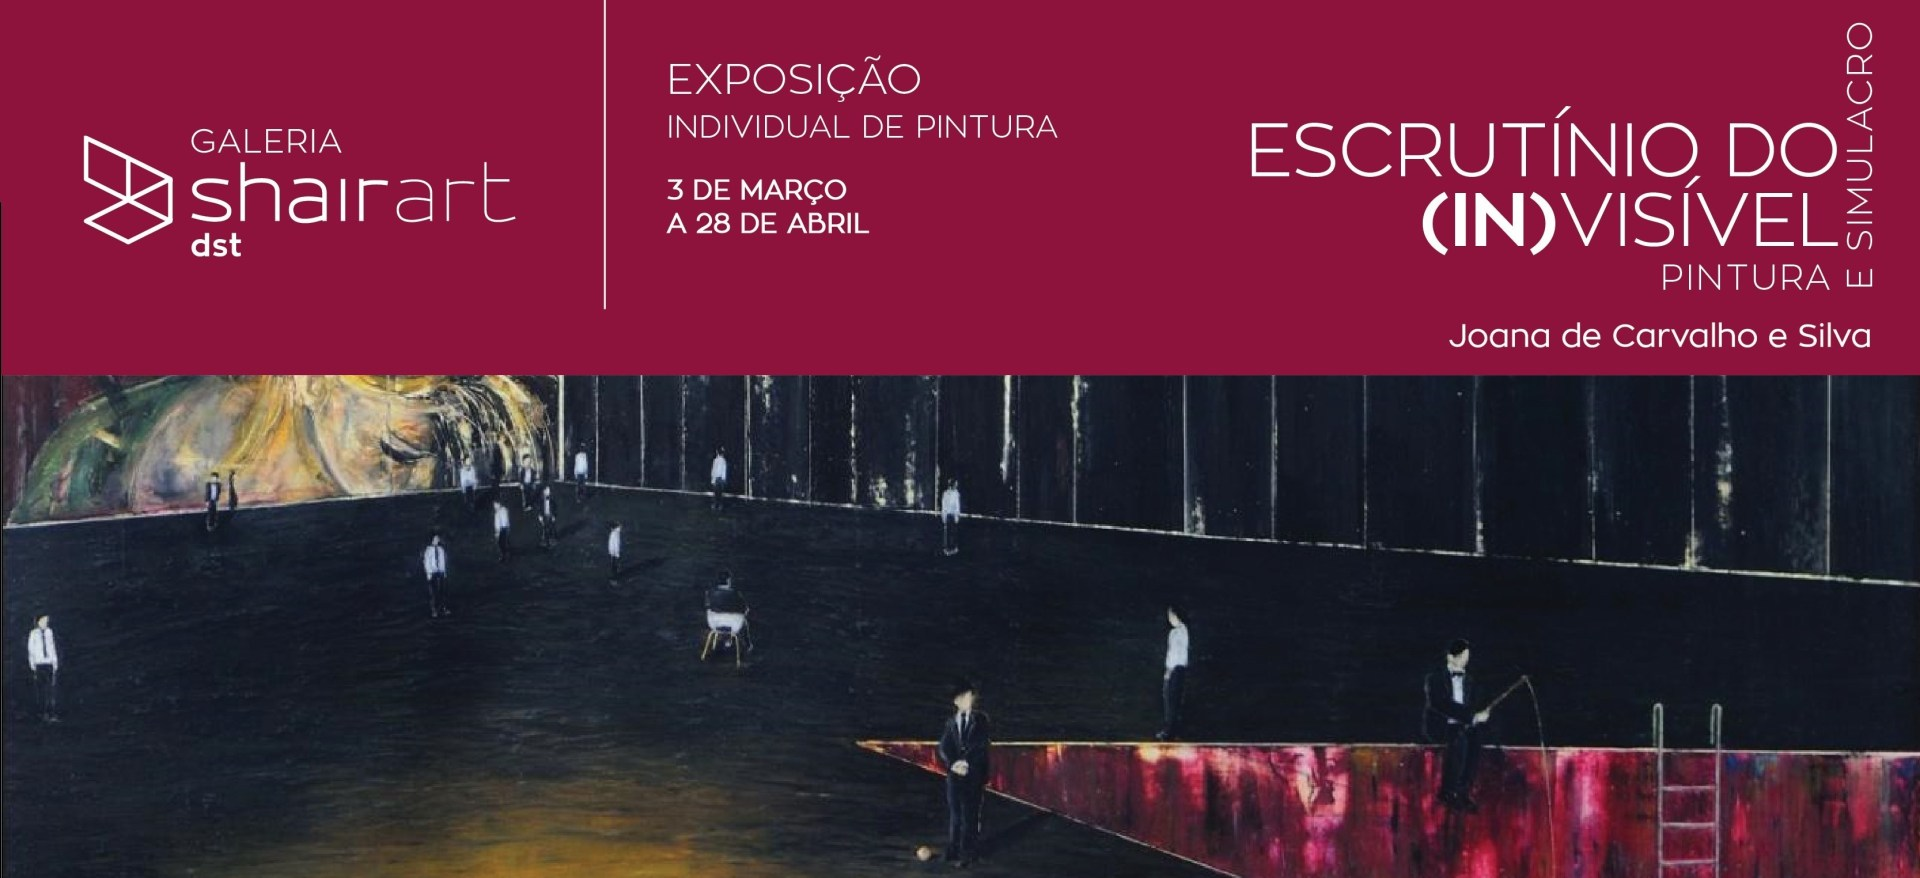 Joana de Carvalho e Silva and an endless source of parallelisms and identifications